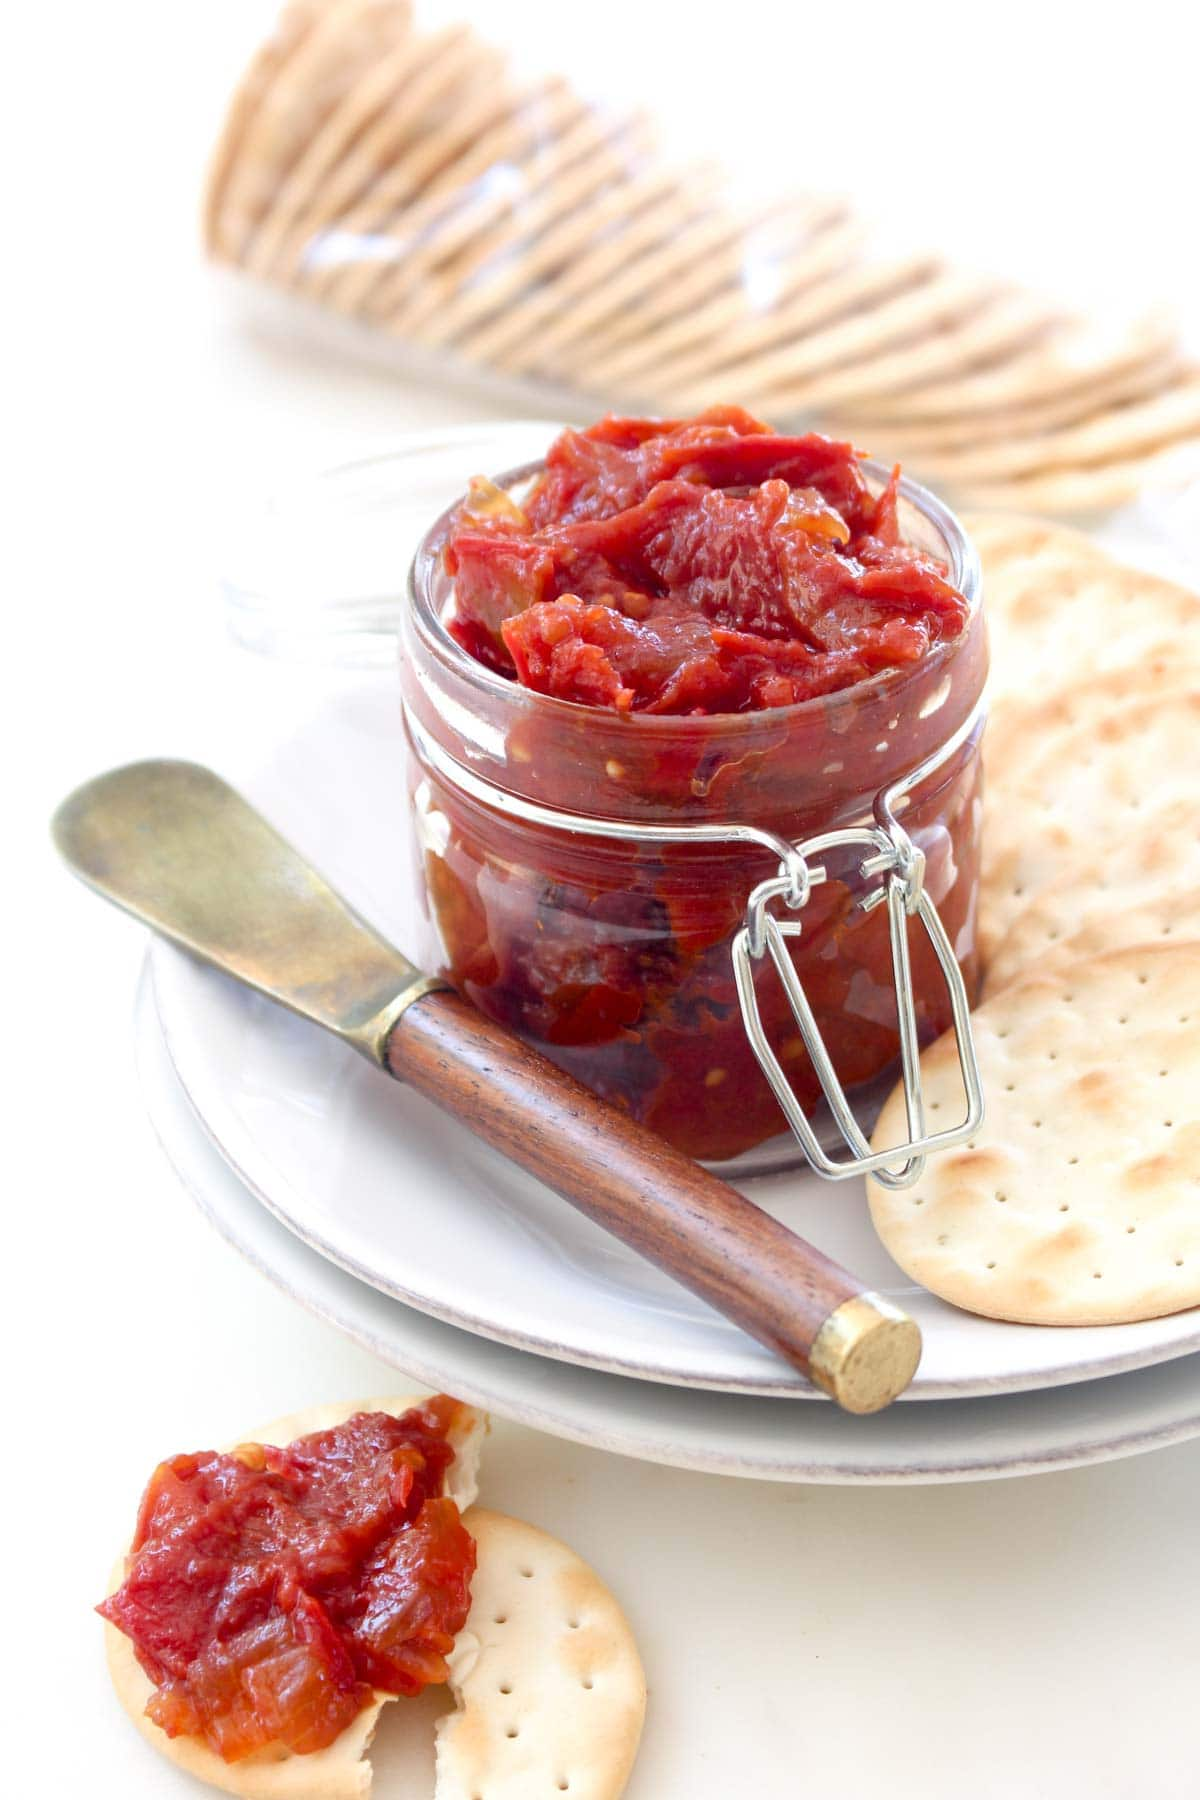 A one pot and one step recipe for homemade tomato jam! The perfect way to use up end of summer tomatoes. This spread is great on sandwiches, crackers, and the perfect addition to your cheese plate.